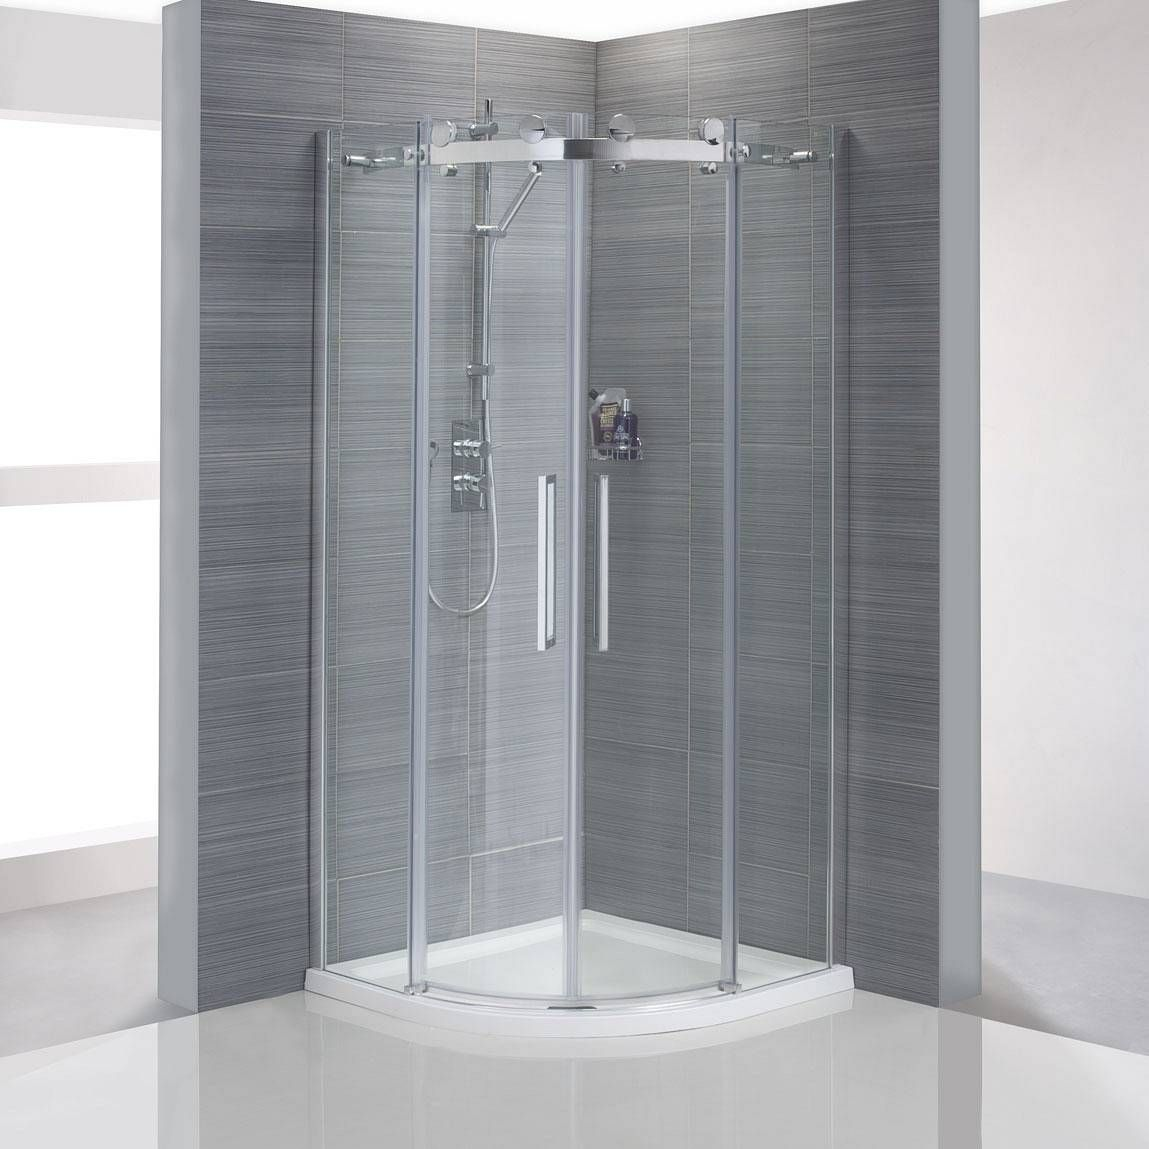 v8 frameless quadrant shower enclosure 900 tray waste